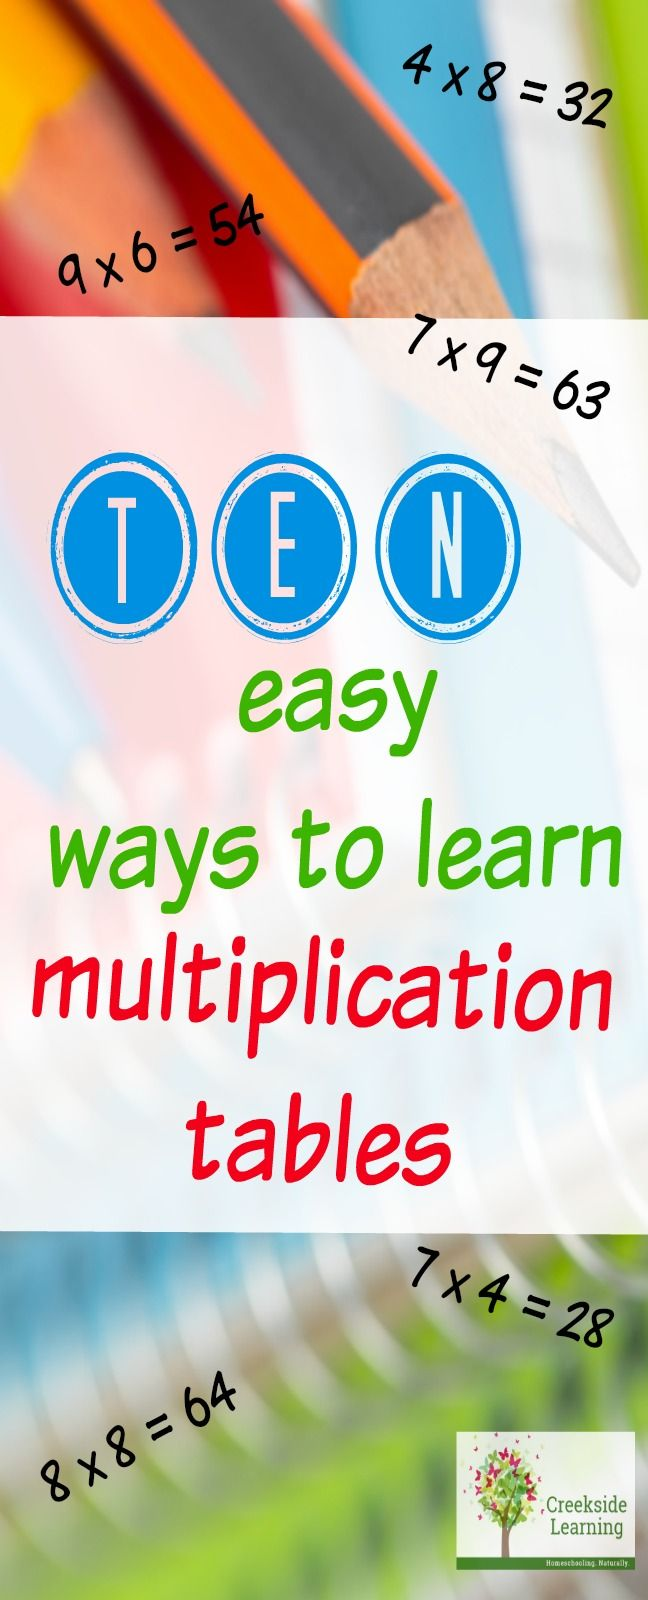 How To Learn Multiplication Tables Quickly 10 Ideas Kid Blogger